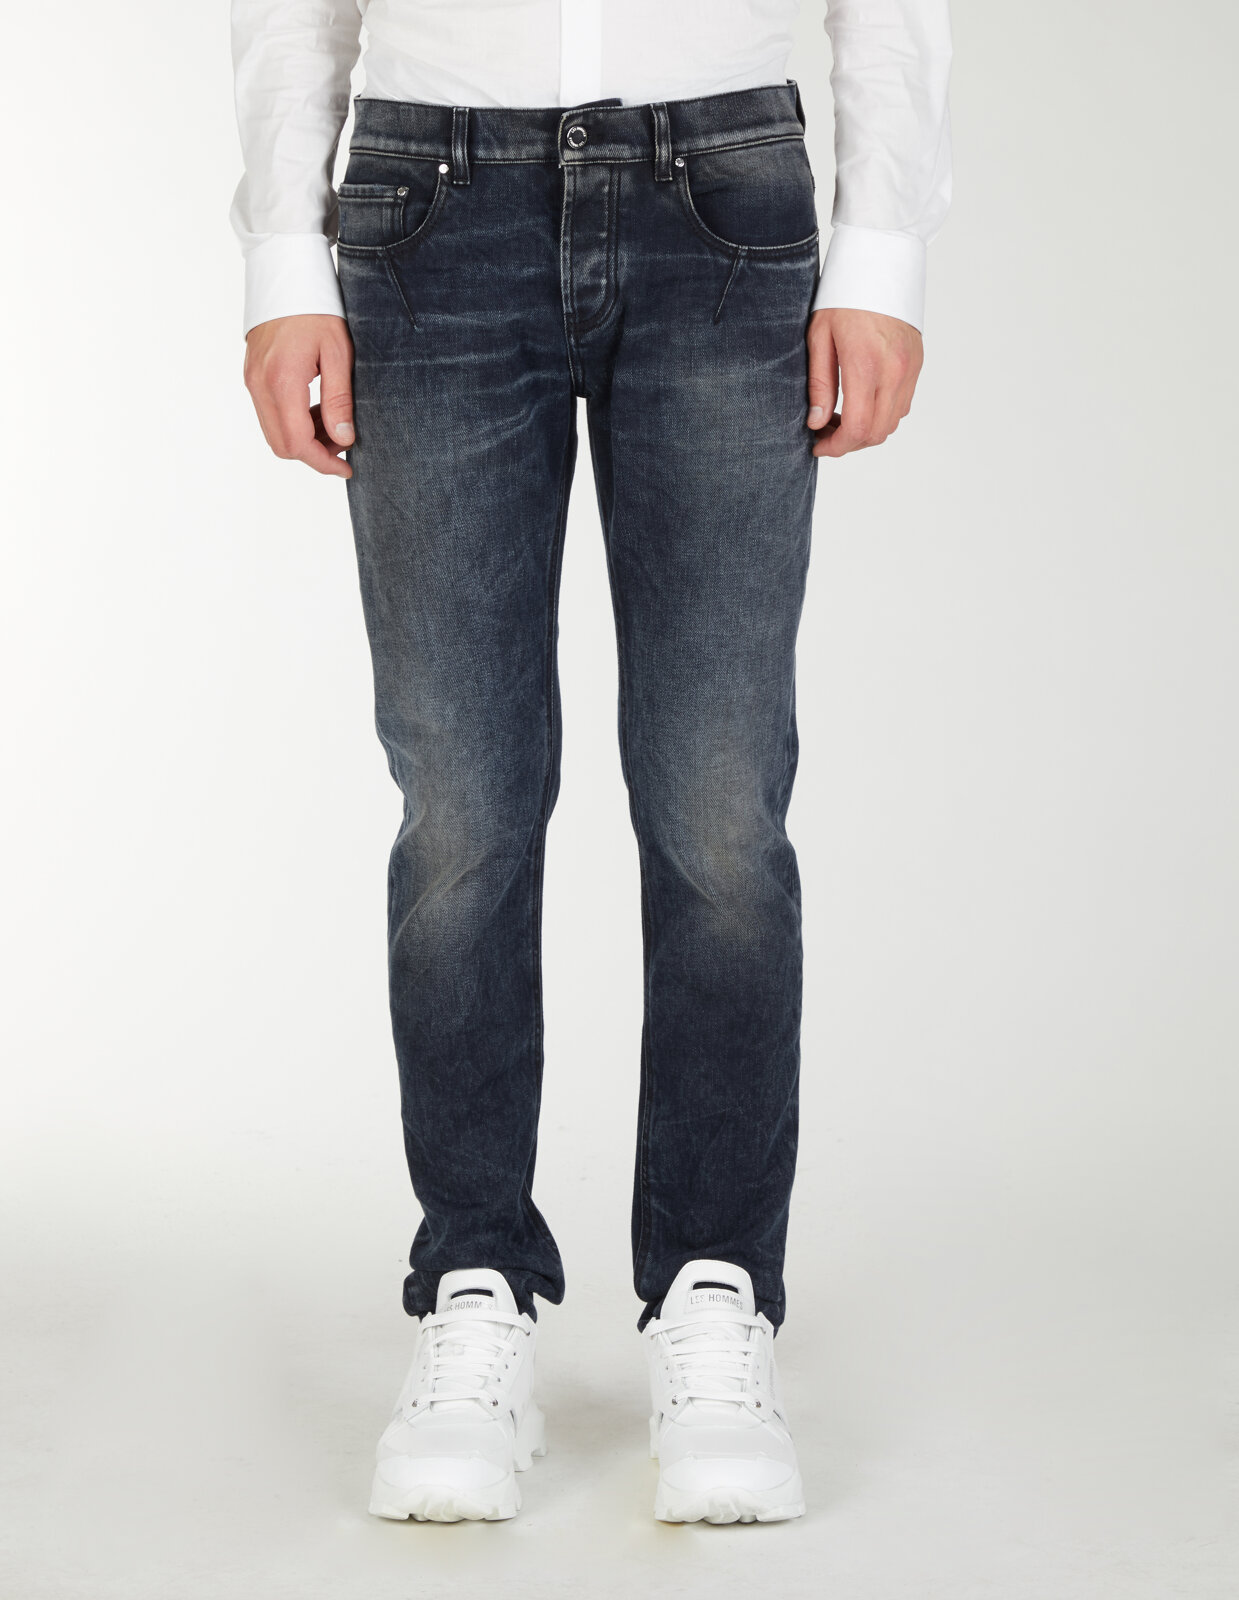 Slim Fit Jeans With Leather Pocket - Les Hommes